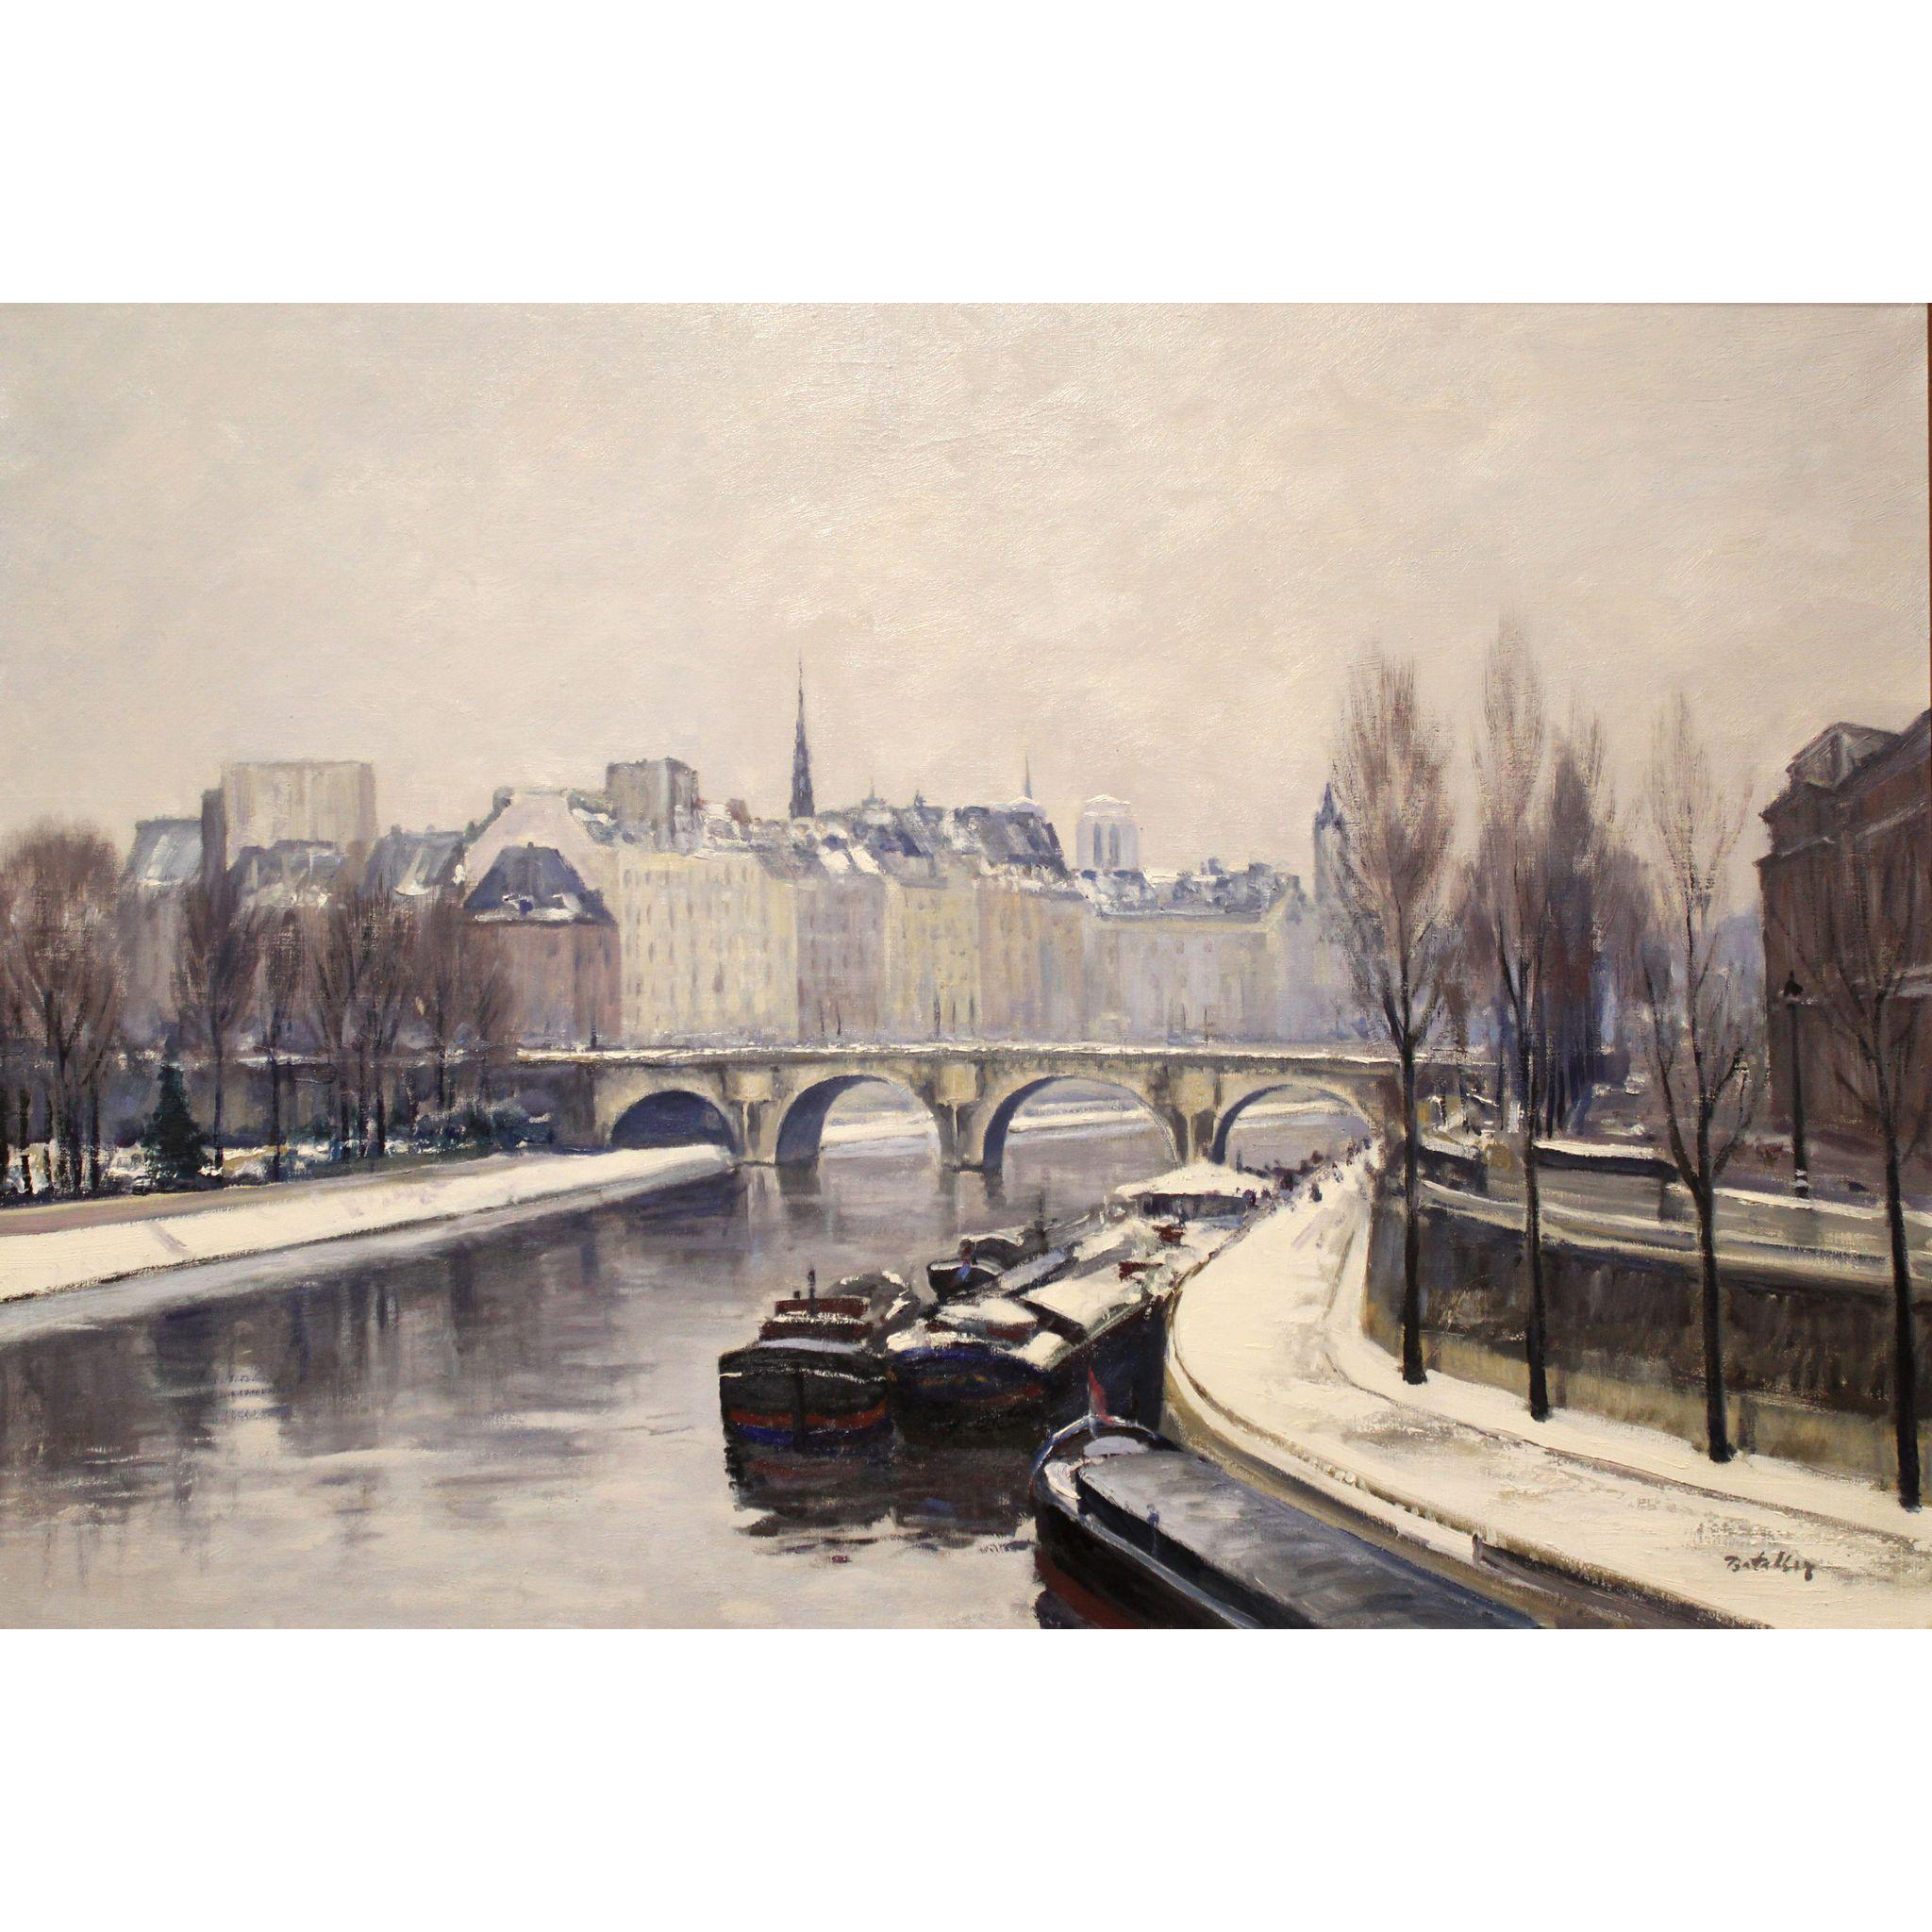 Rafael Bataller Oil Painting Winter Cityscape - Pont Neuf, Paris, France